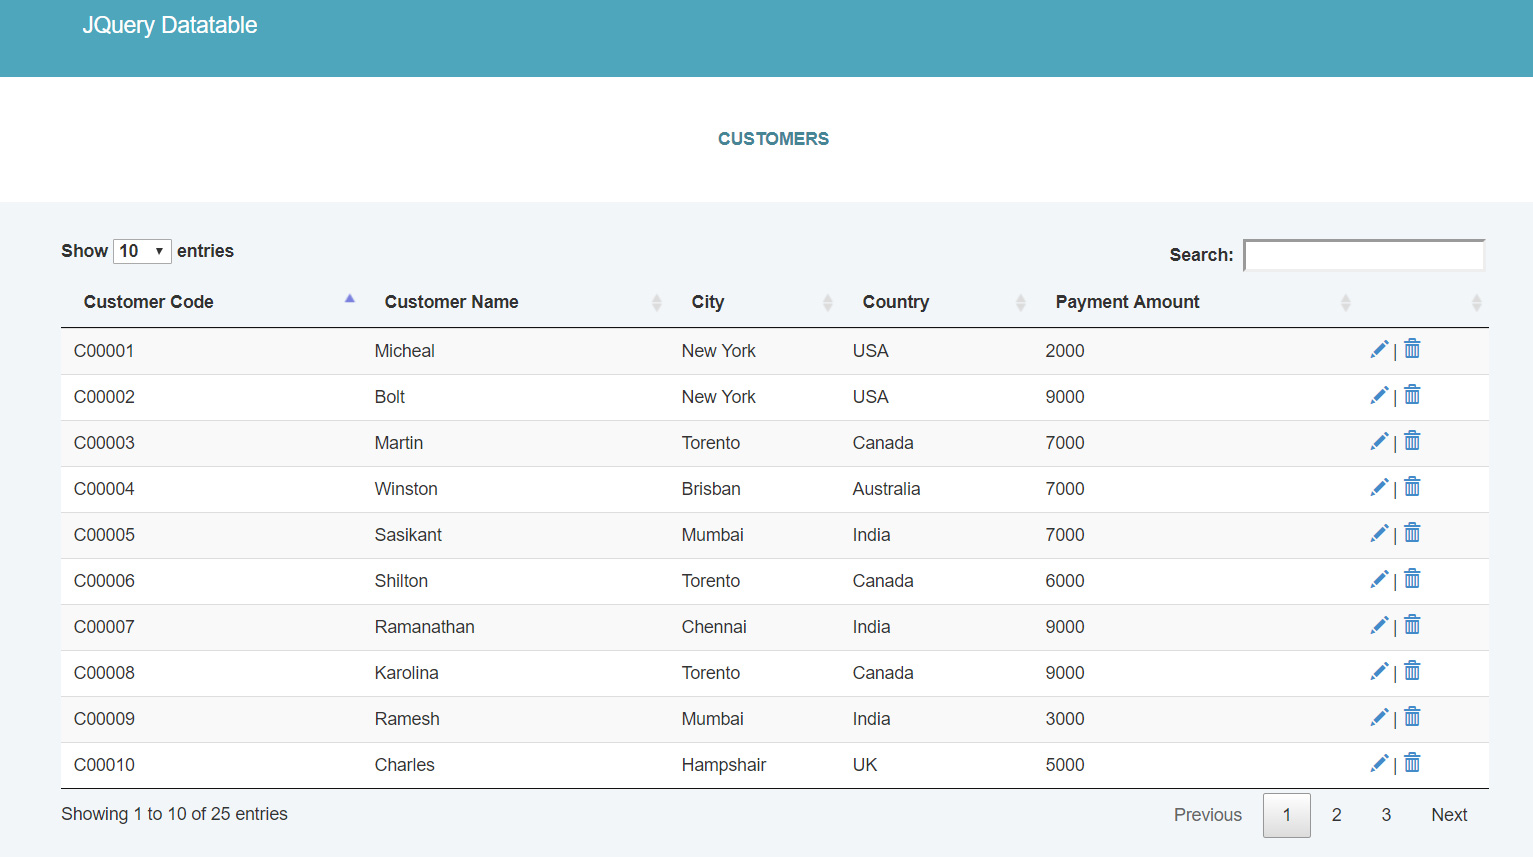 jquery-datatable-data-manipulation-table-preview-with-button